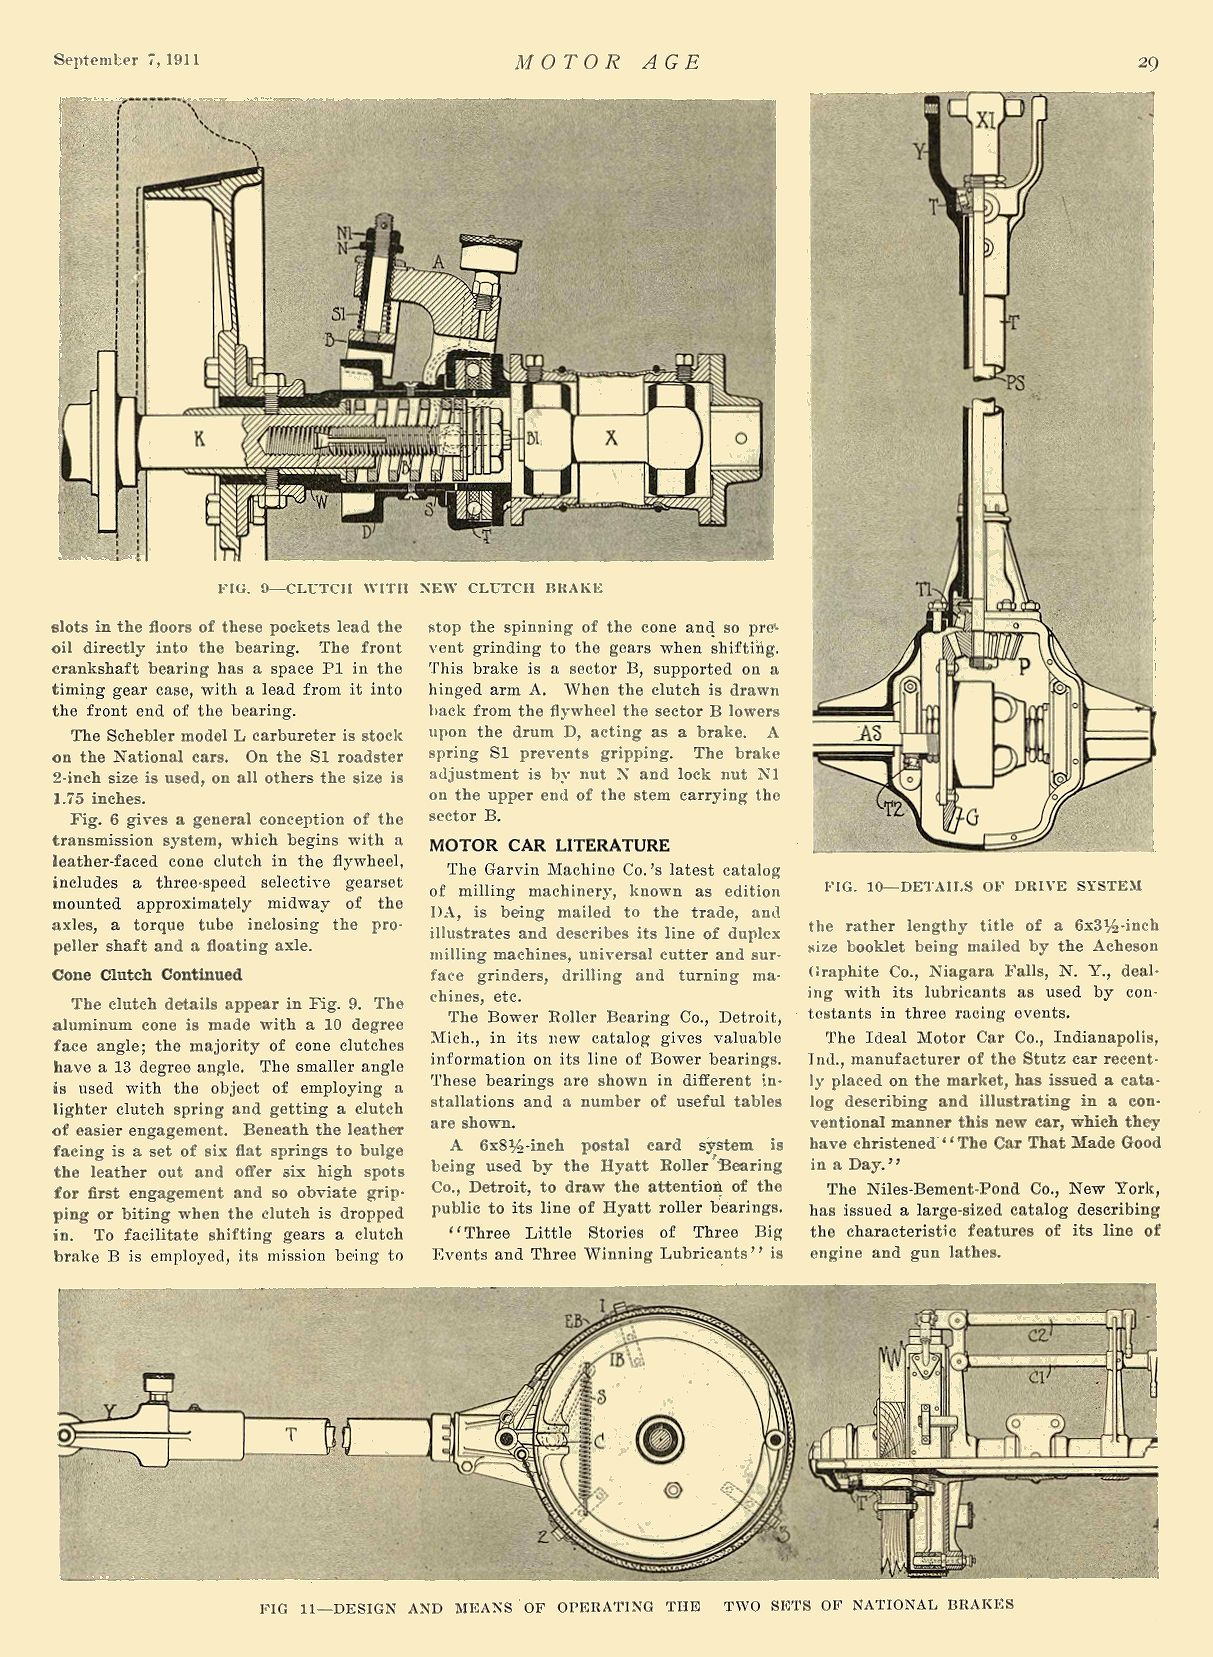 1912 9 7 NATIONAL Article The National 40—Series S National Motor Vehicle Co. Indianapolis, IND MOTOR AGE September 7, 1911 8.25″x12″ page 29